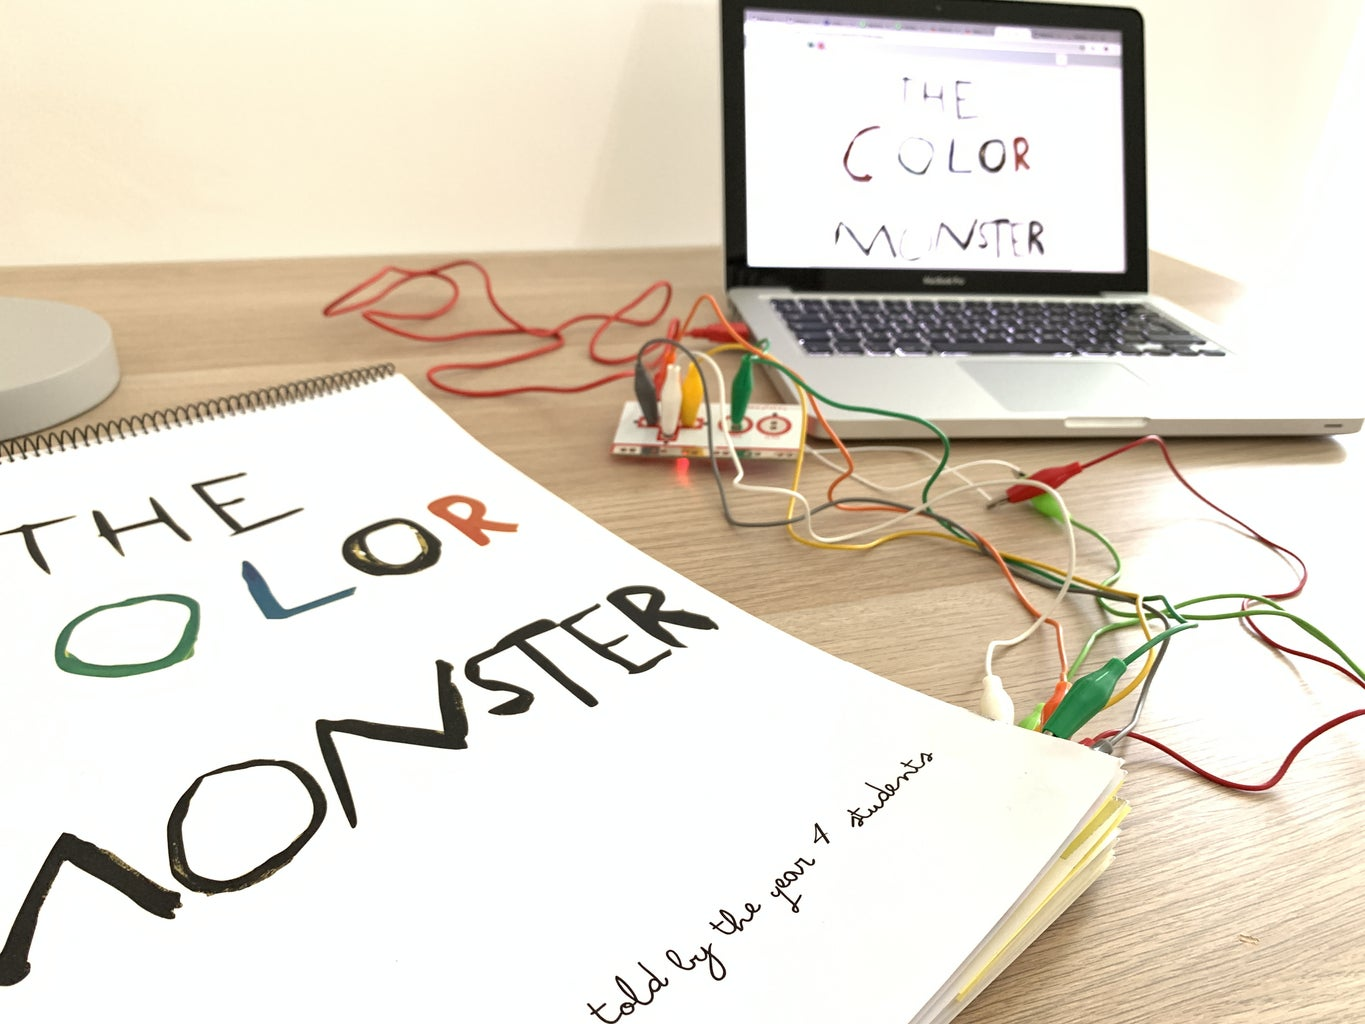 Add the Makey Makey and Have Fun!